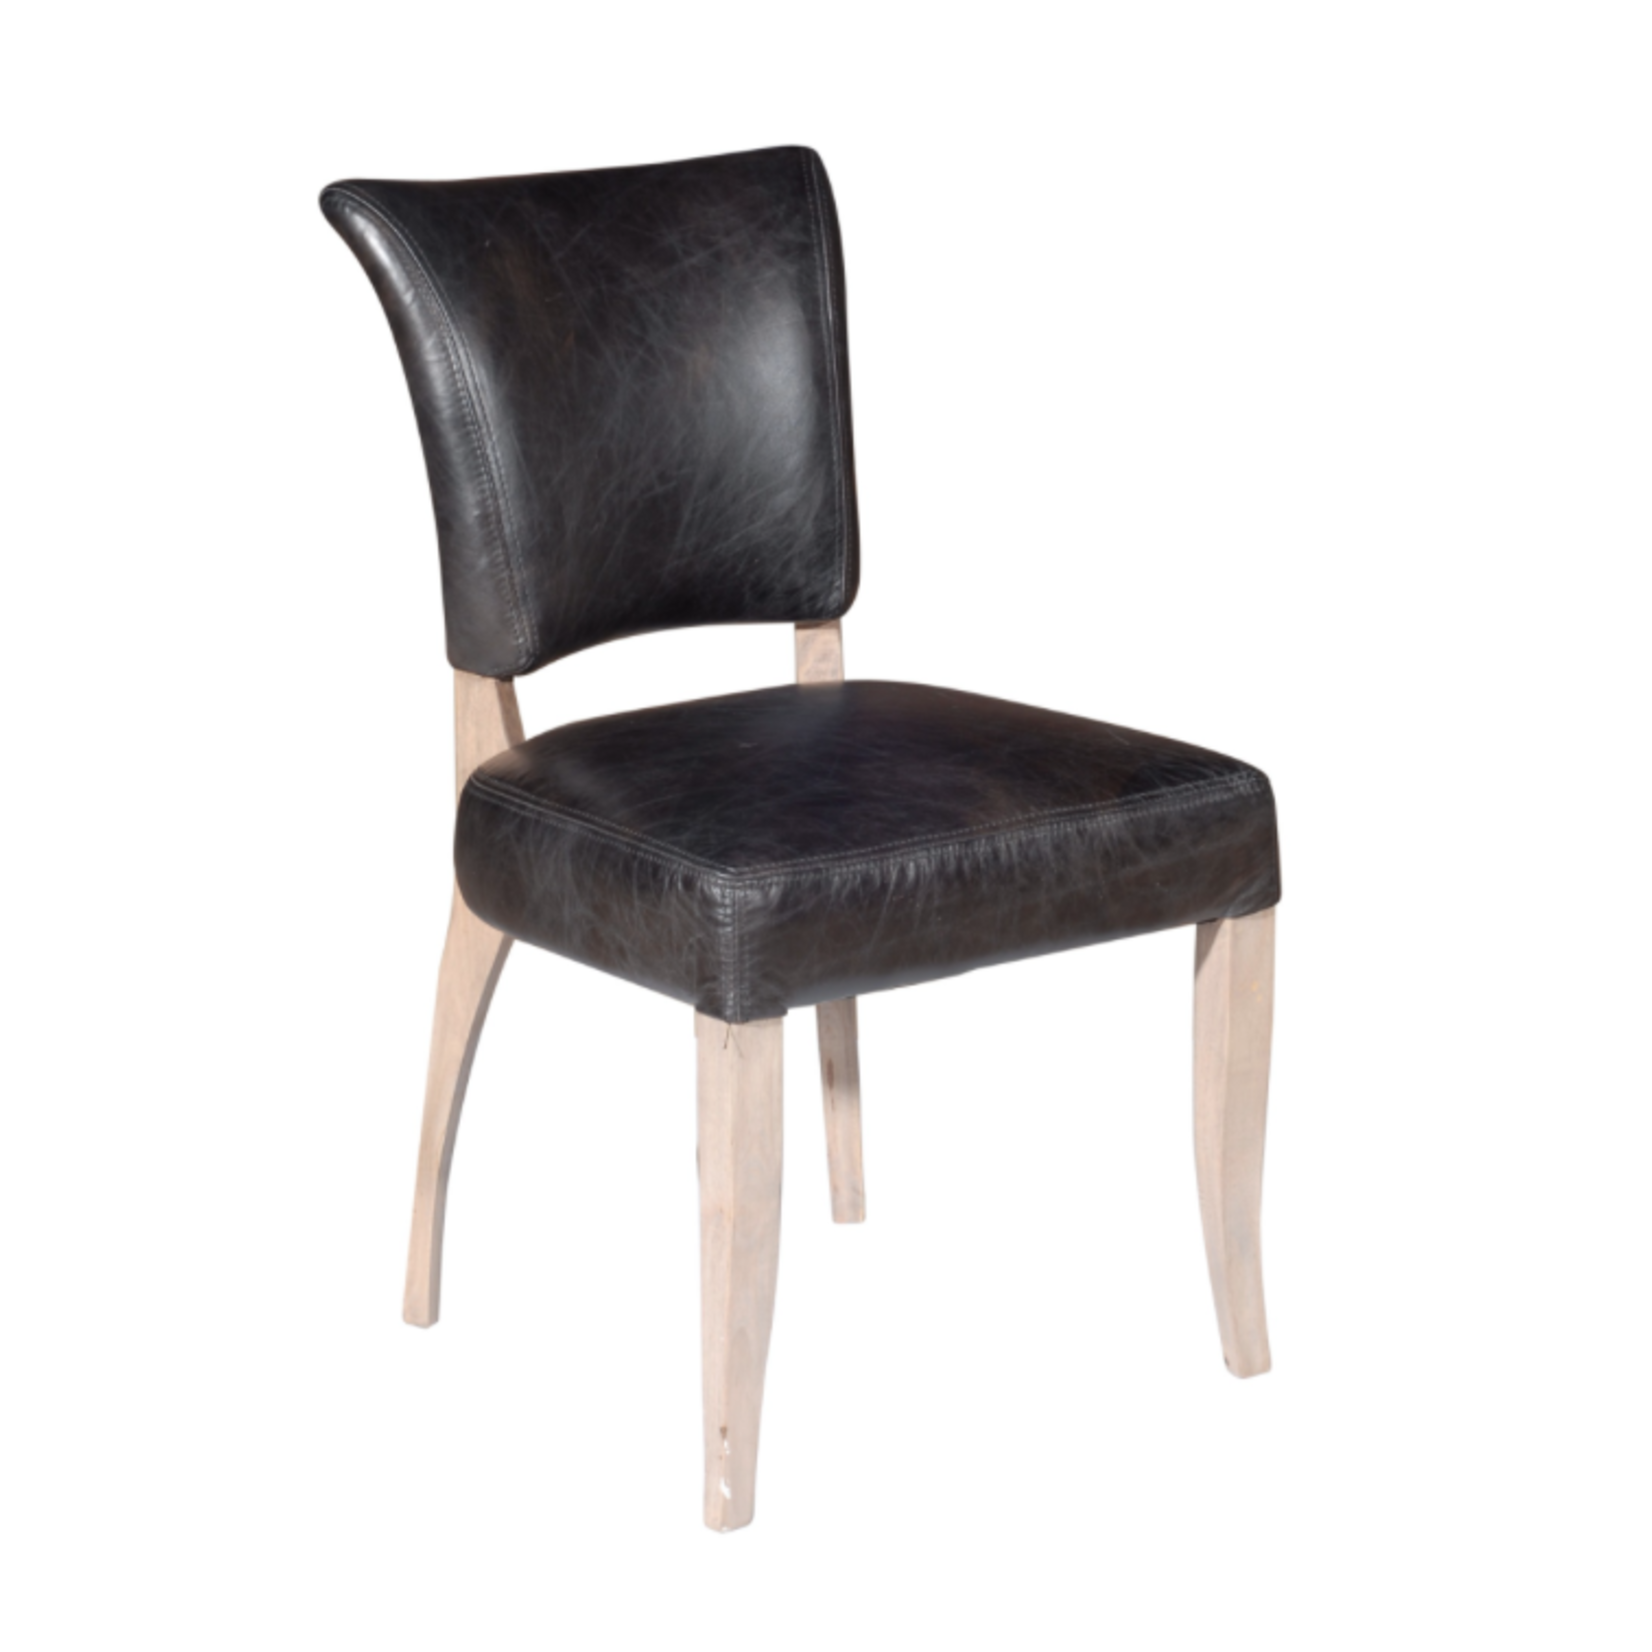 TIMOTHY OULTON MIMI DINING CHAIR DESTROYED BLACK